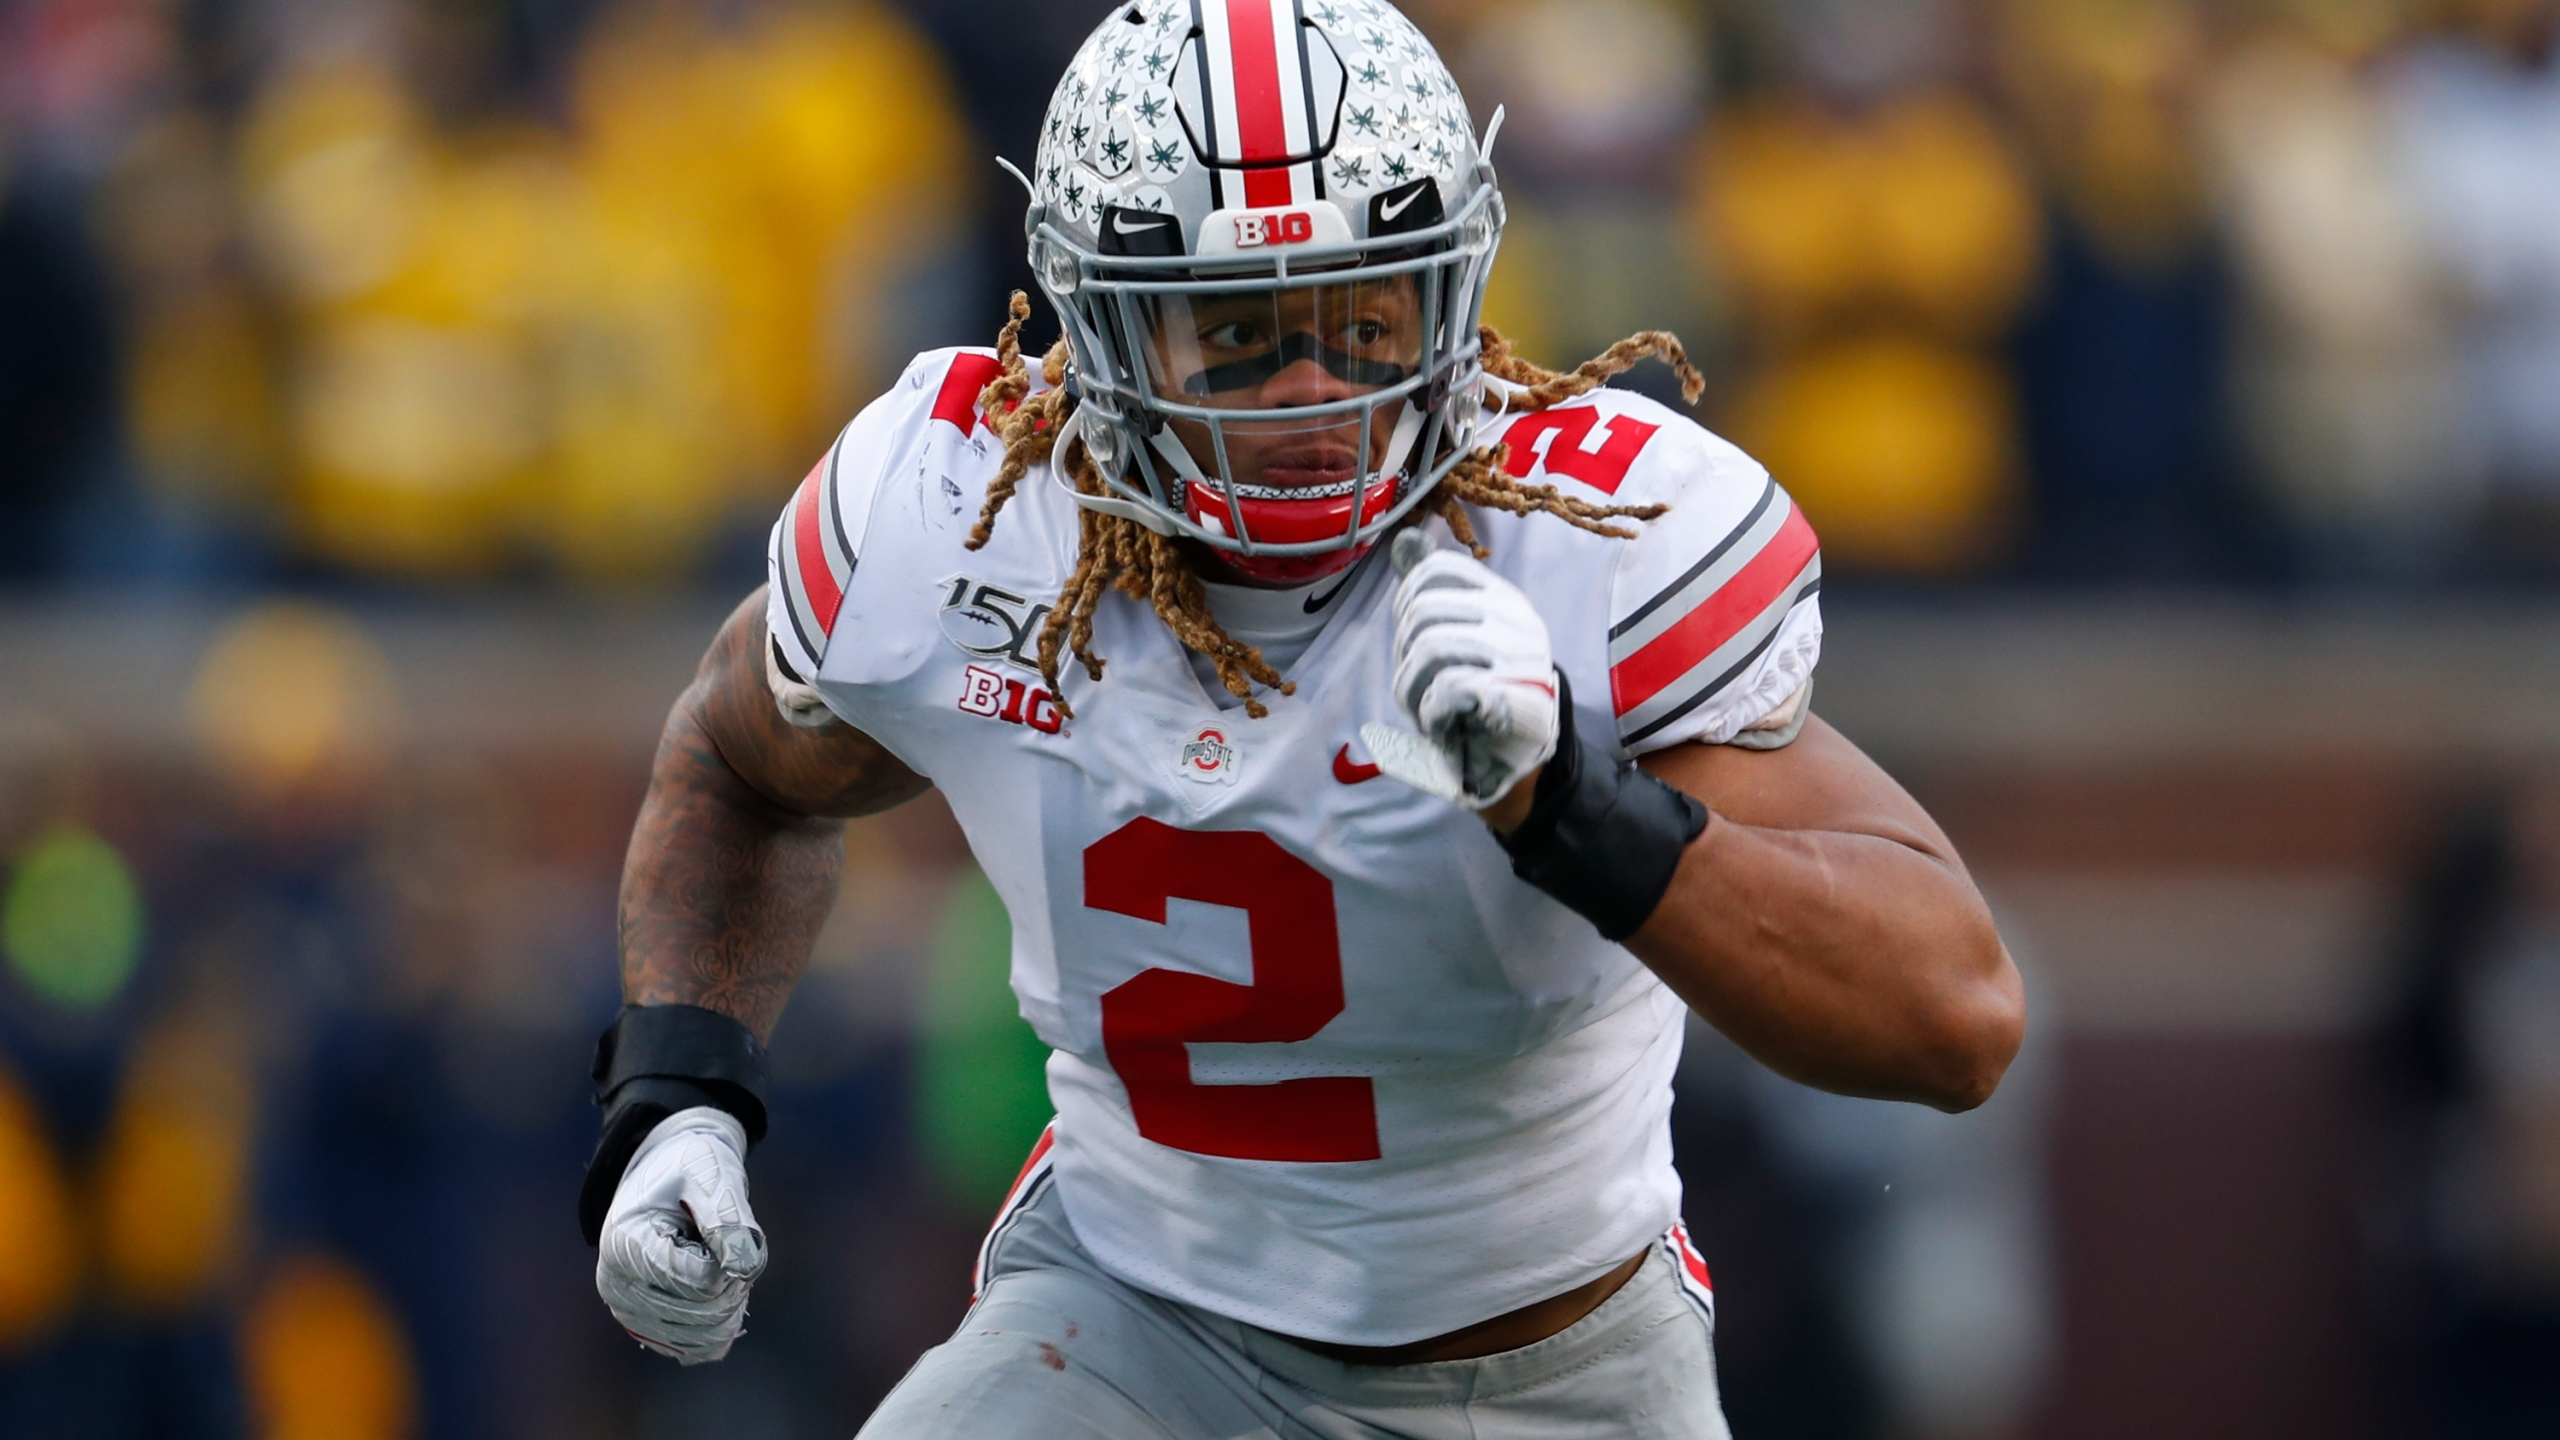 Redskins Select Ohio State S Chase Young With 2nd Overall Pick In Nfl Draft 8news